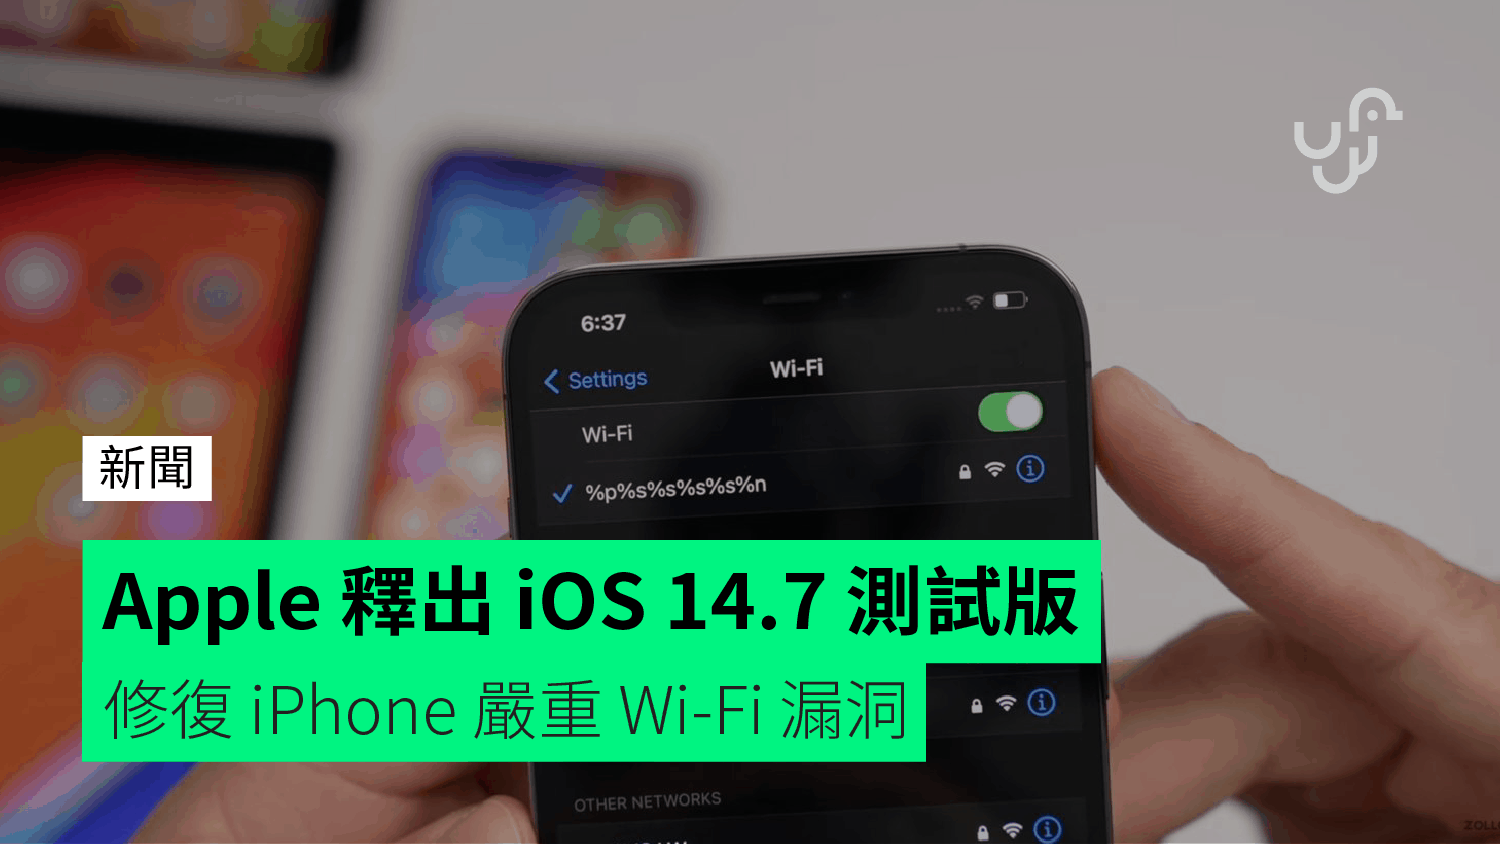 Apple releases iOS 14.7 beta to fix serious iPhone Wi-Fi ...